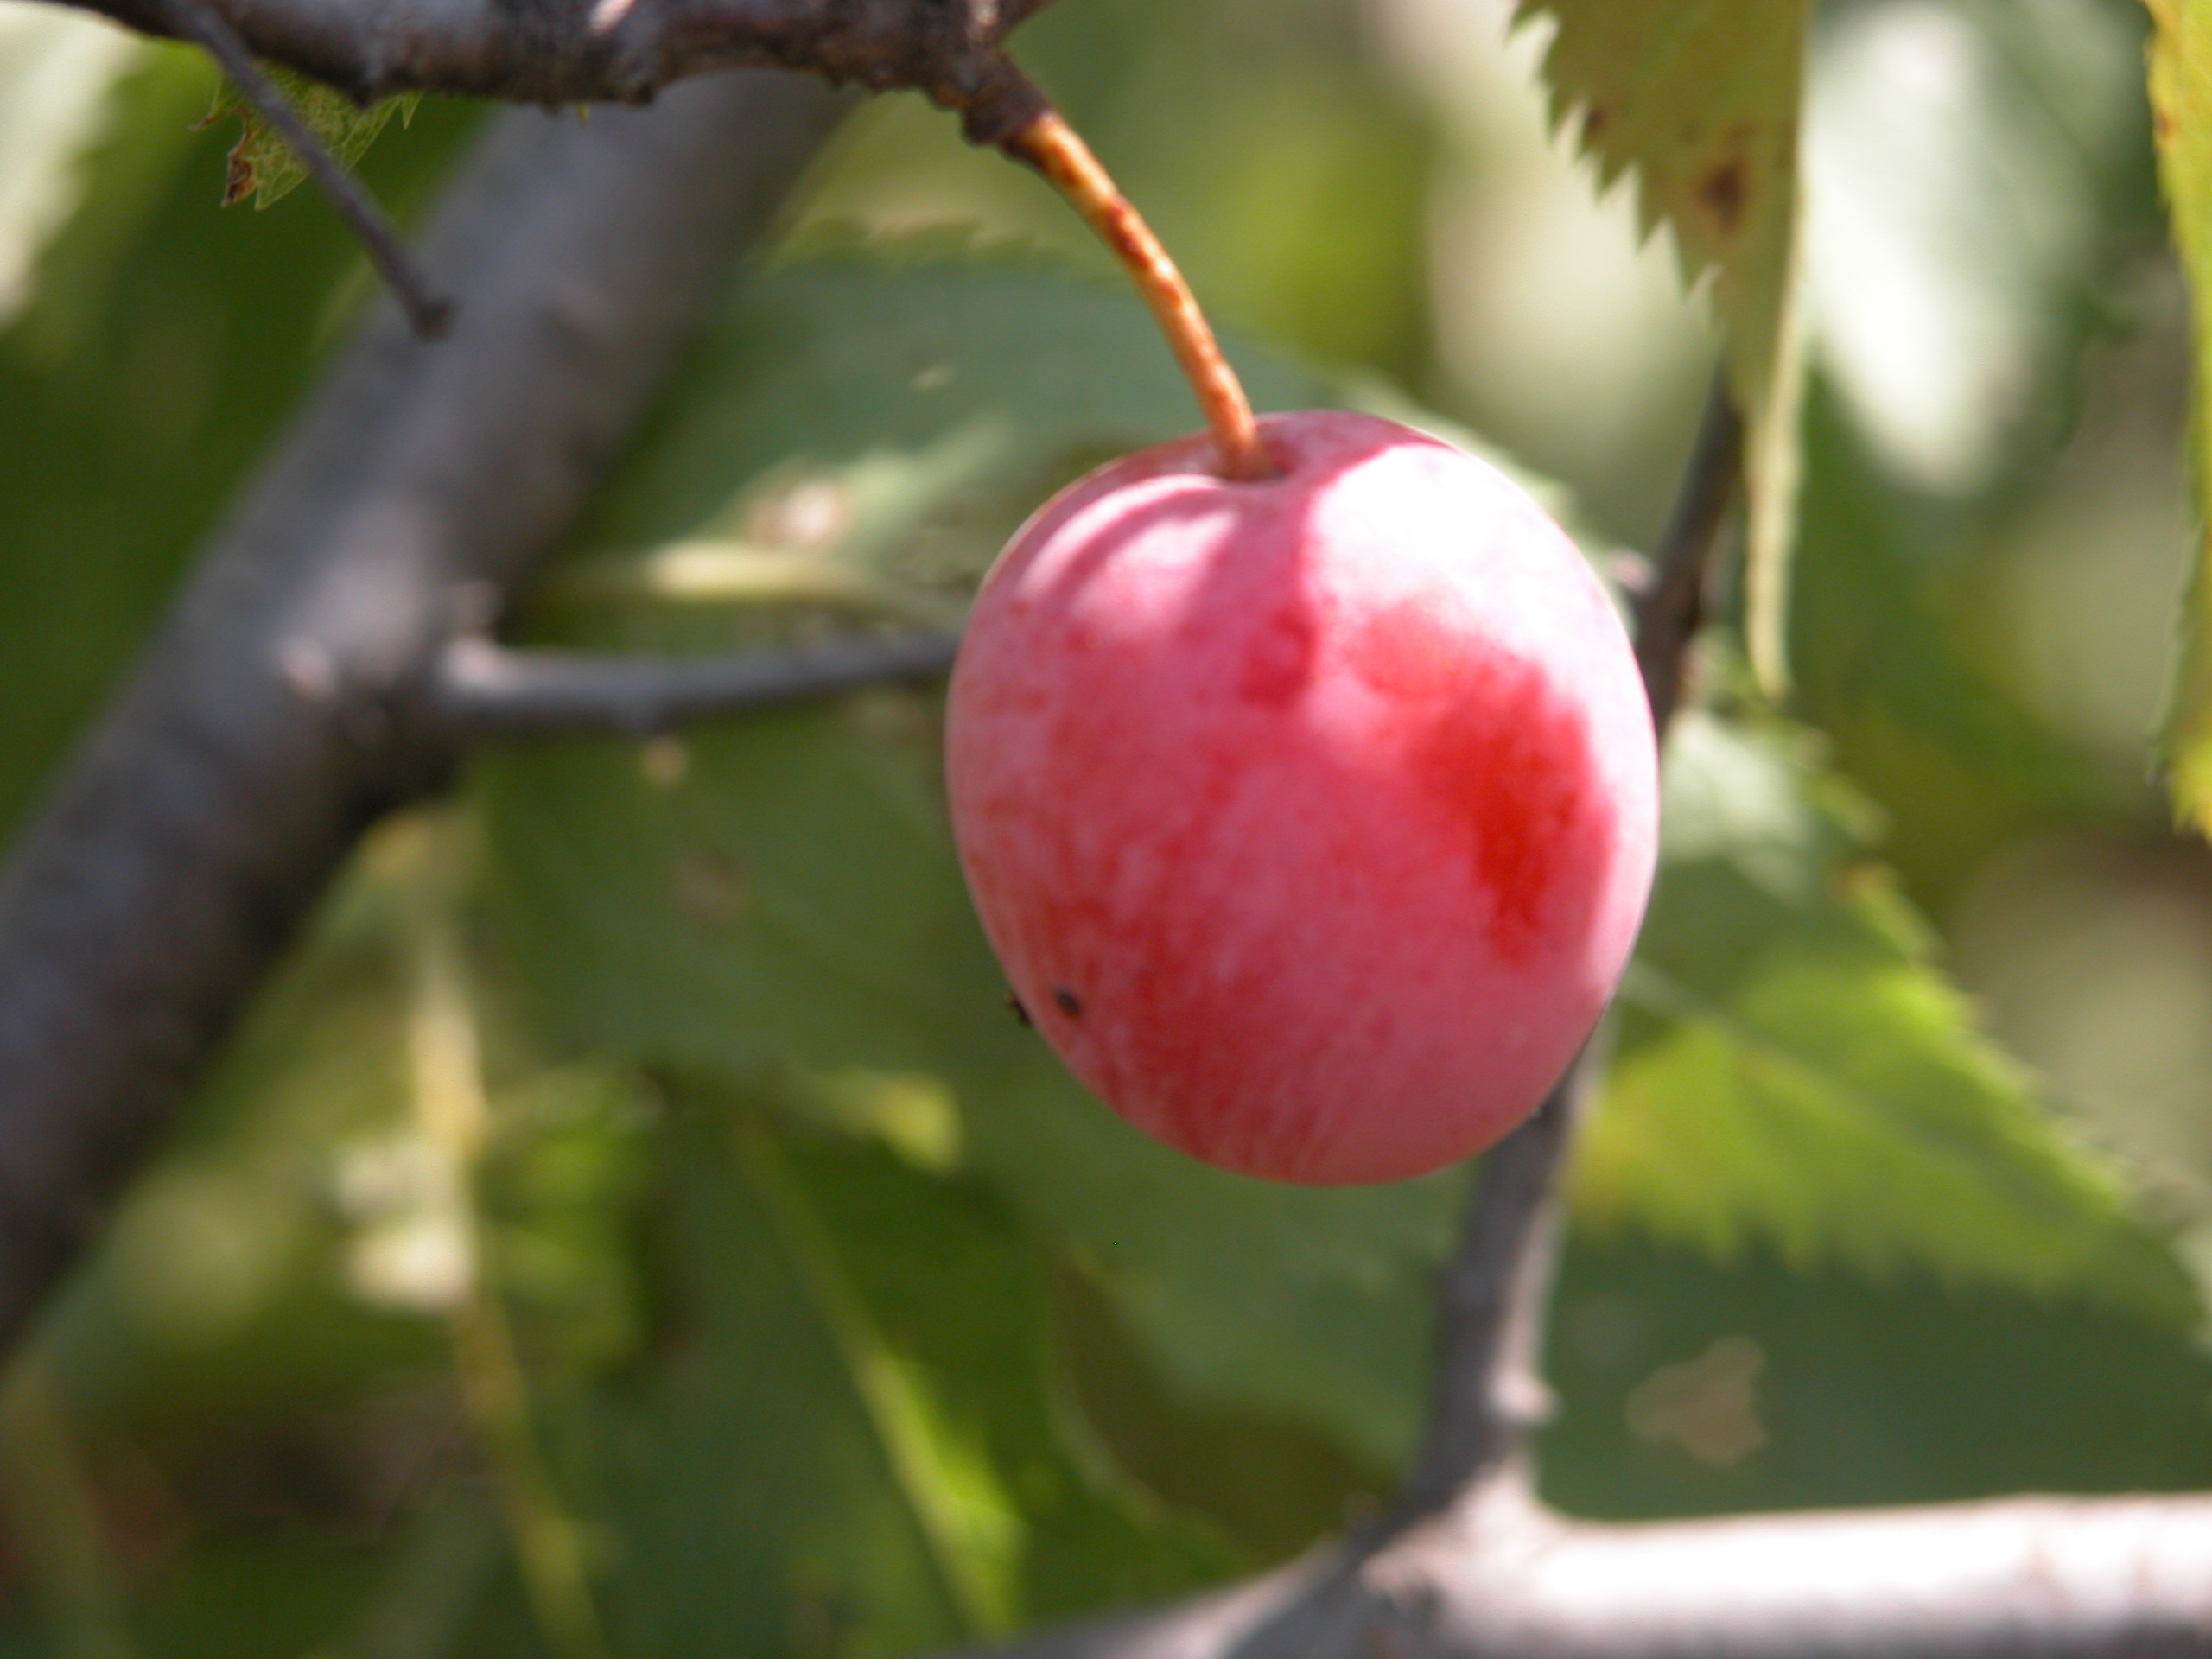 03_PLUM_FRUIT.JPG Image